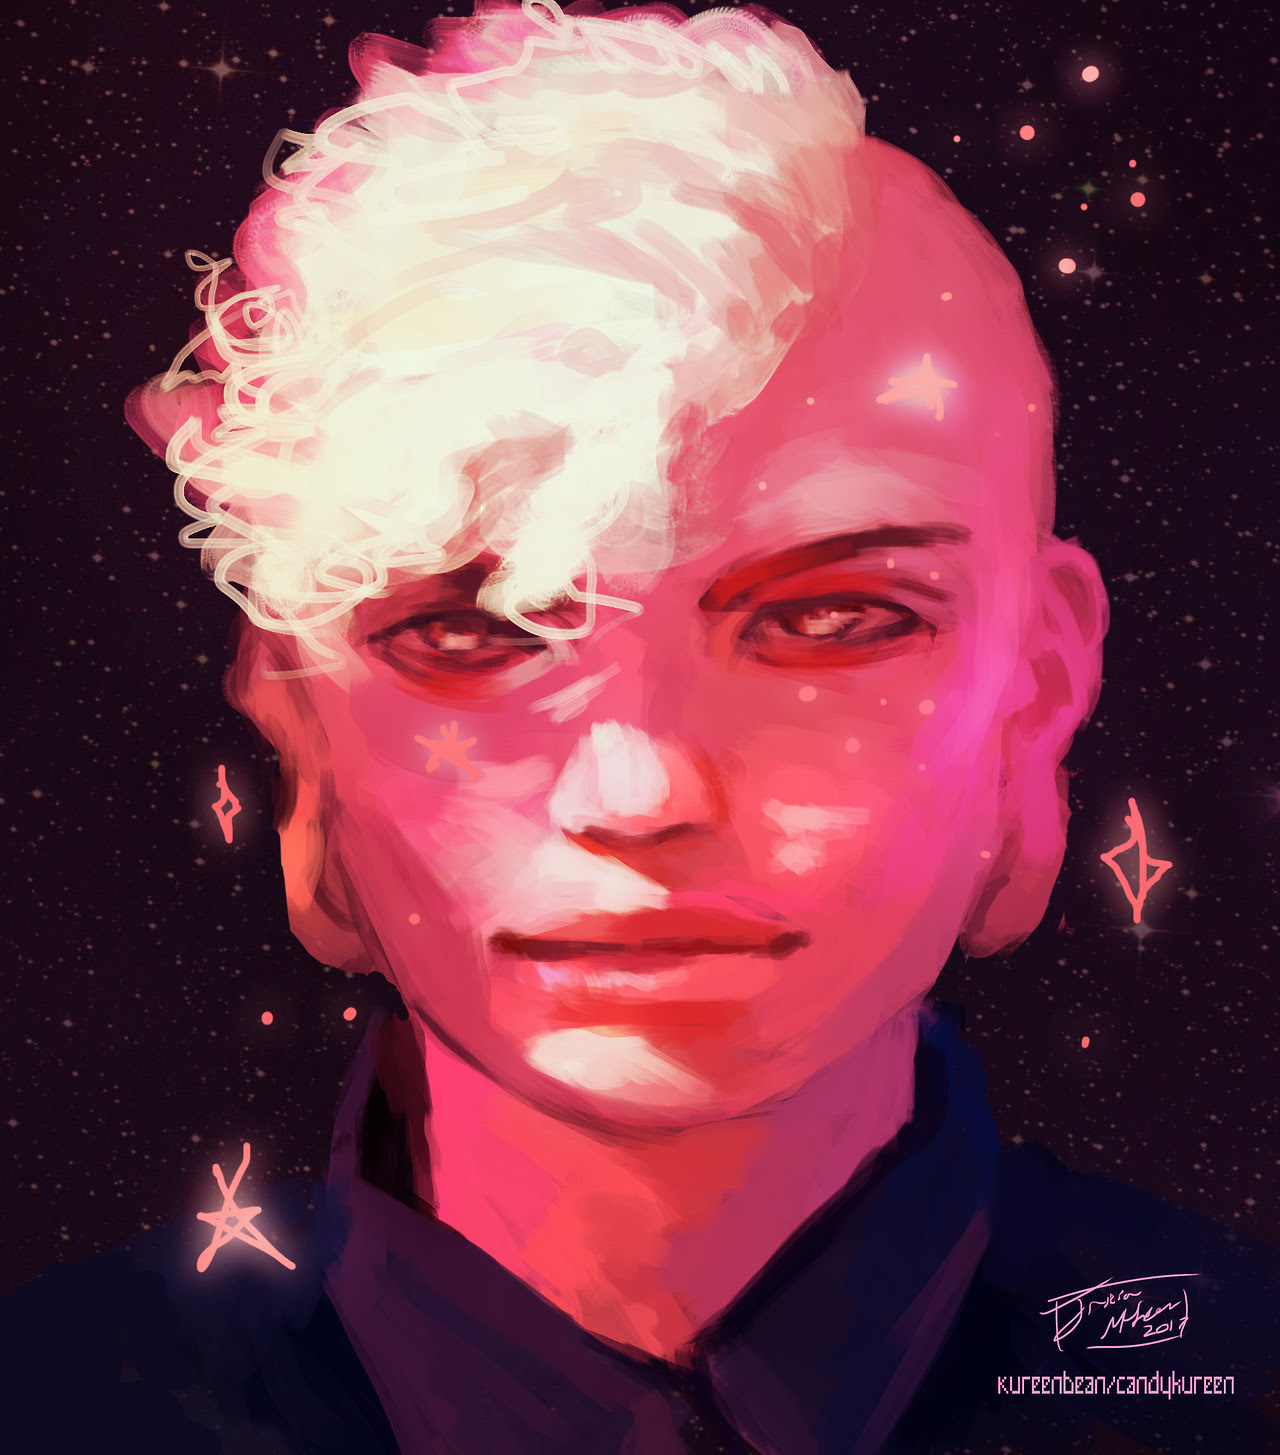 Lars of the Stars (messing around with colors and lighting